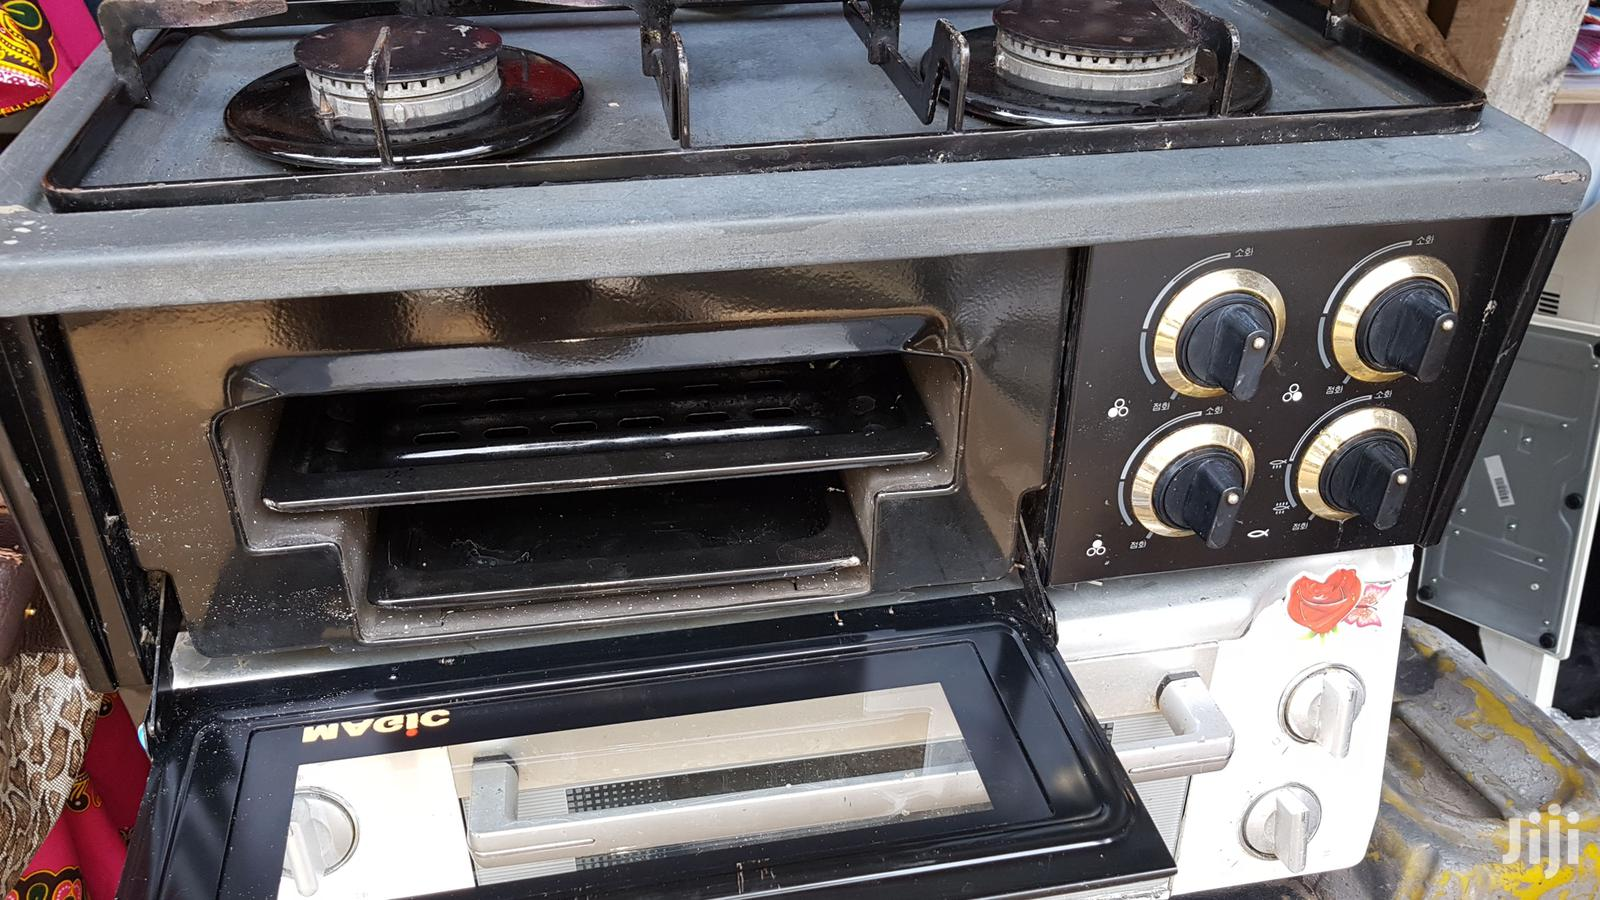 UK Used Table Top Gas Cooker With Oven